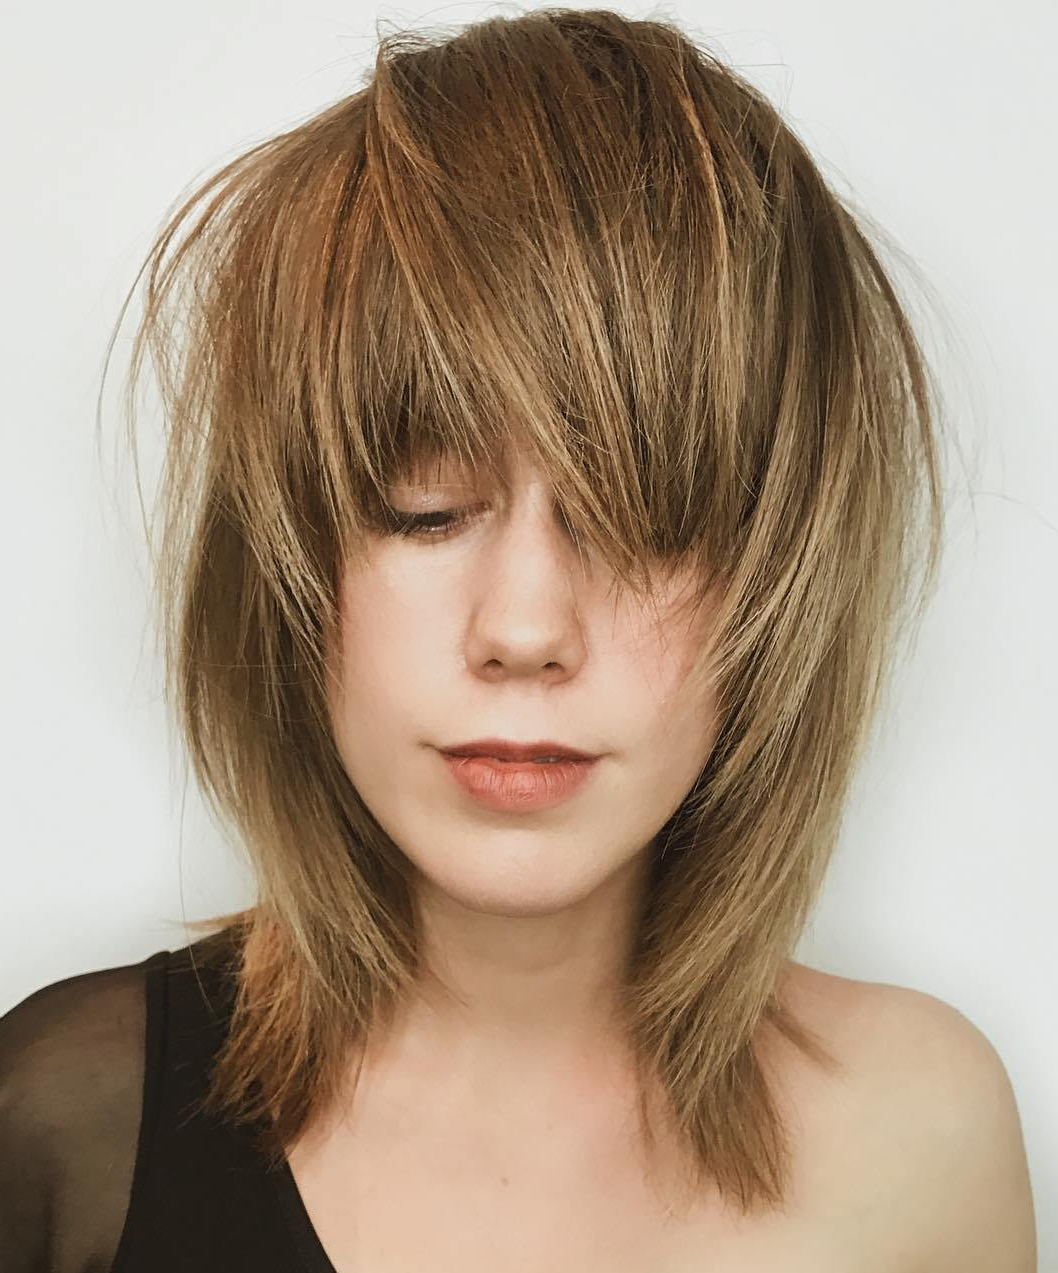 The Most Instagrammable Hairstyles With Bangs In 2019 Pertaining To Recent Textured Shag Haircuts With Rocky Bangs (View 7 of 20)